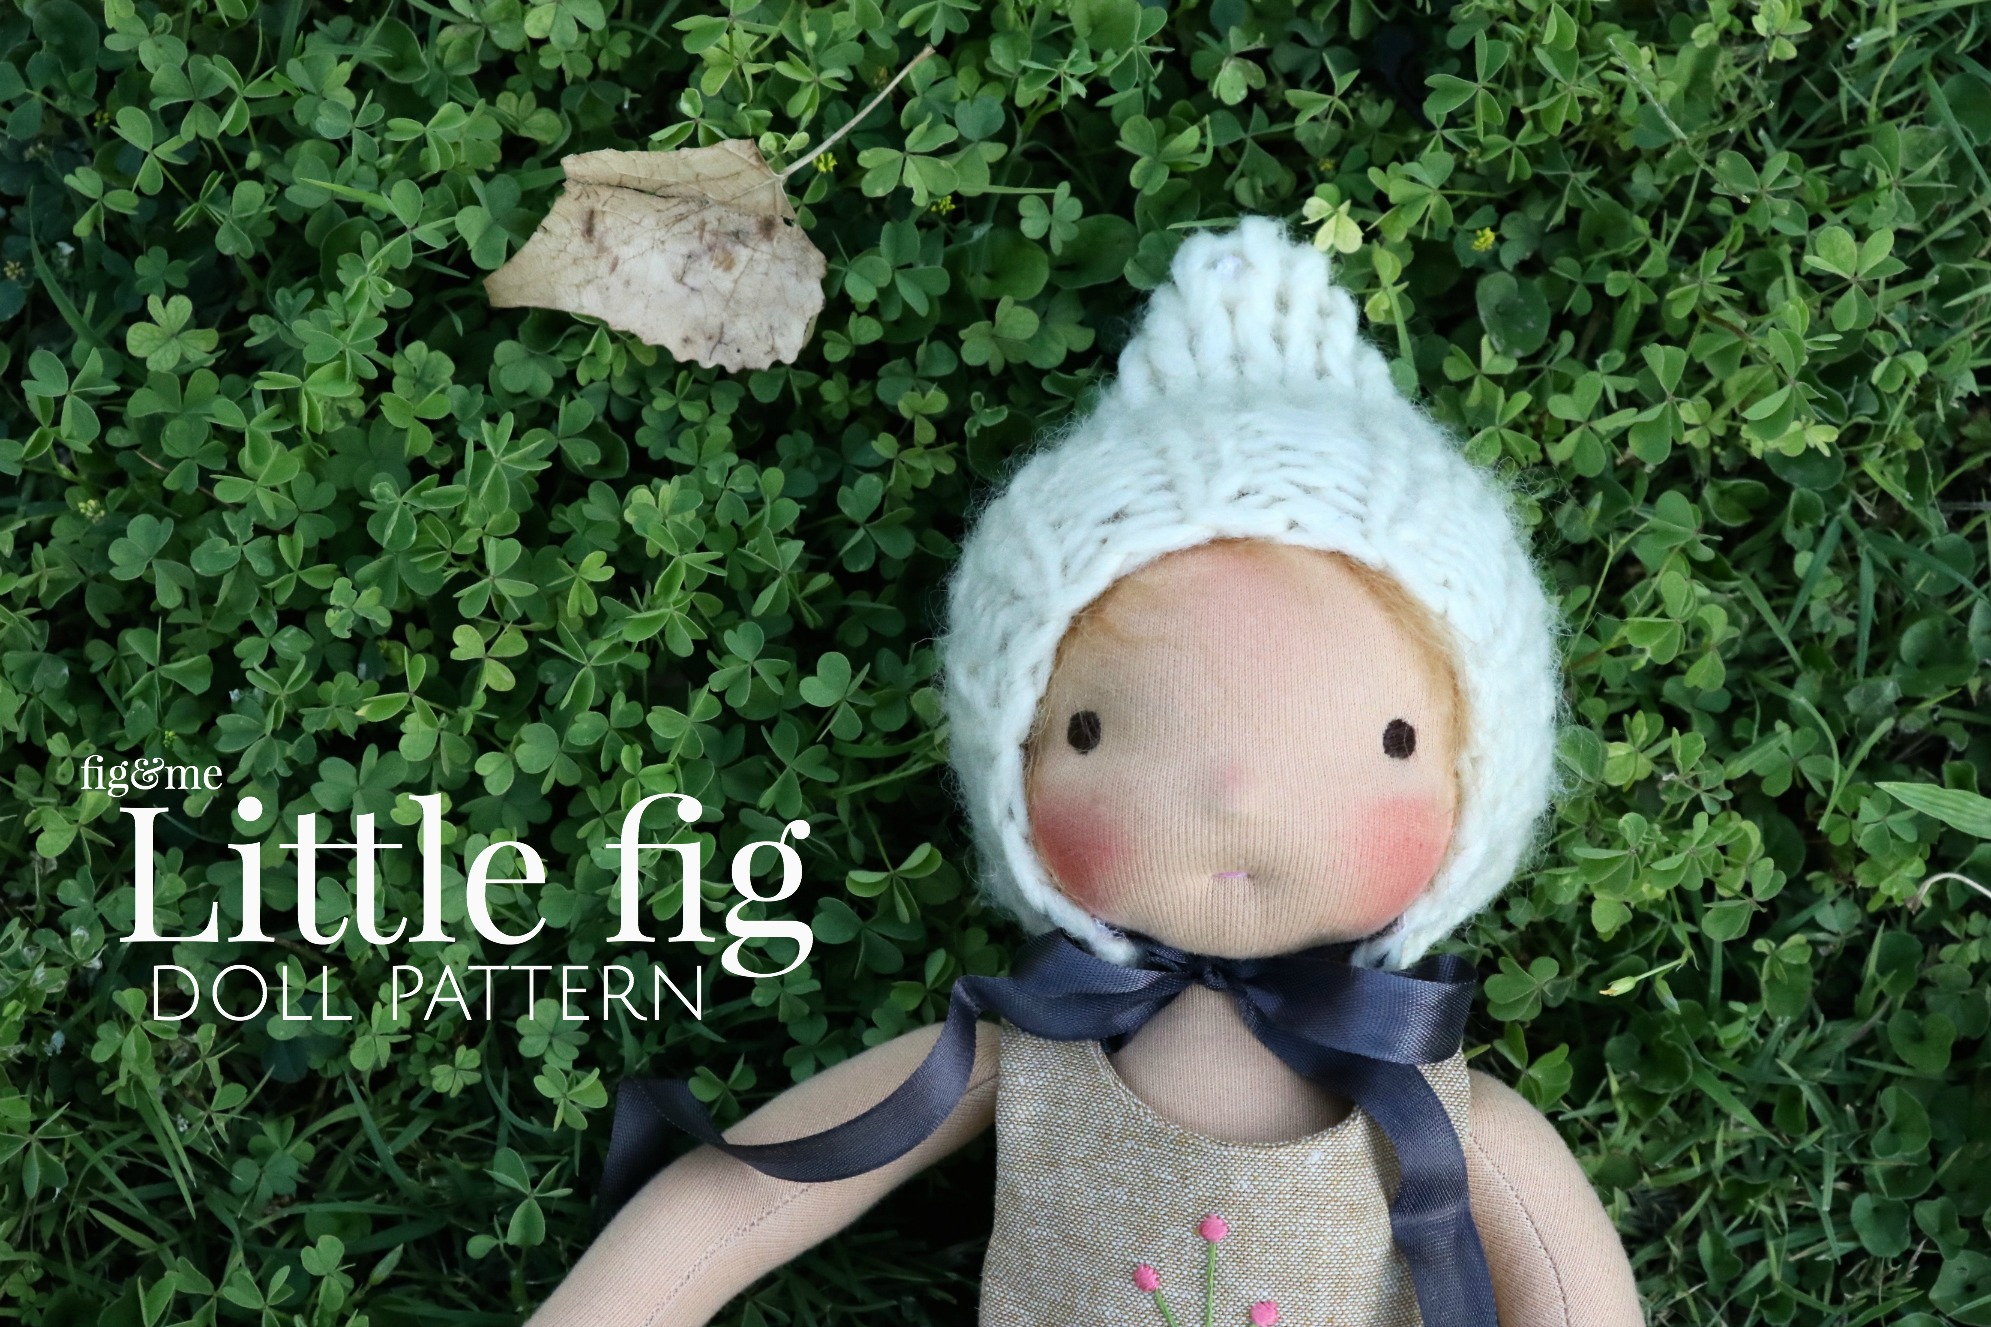 A waldorf-style dollmaking pattern by Fig and me.